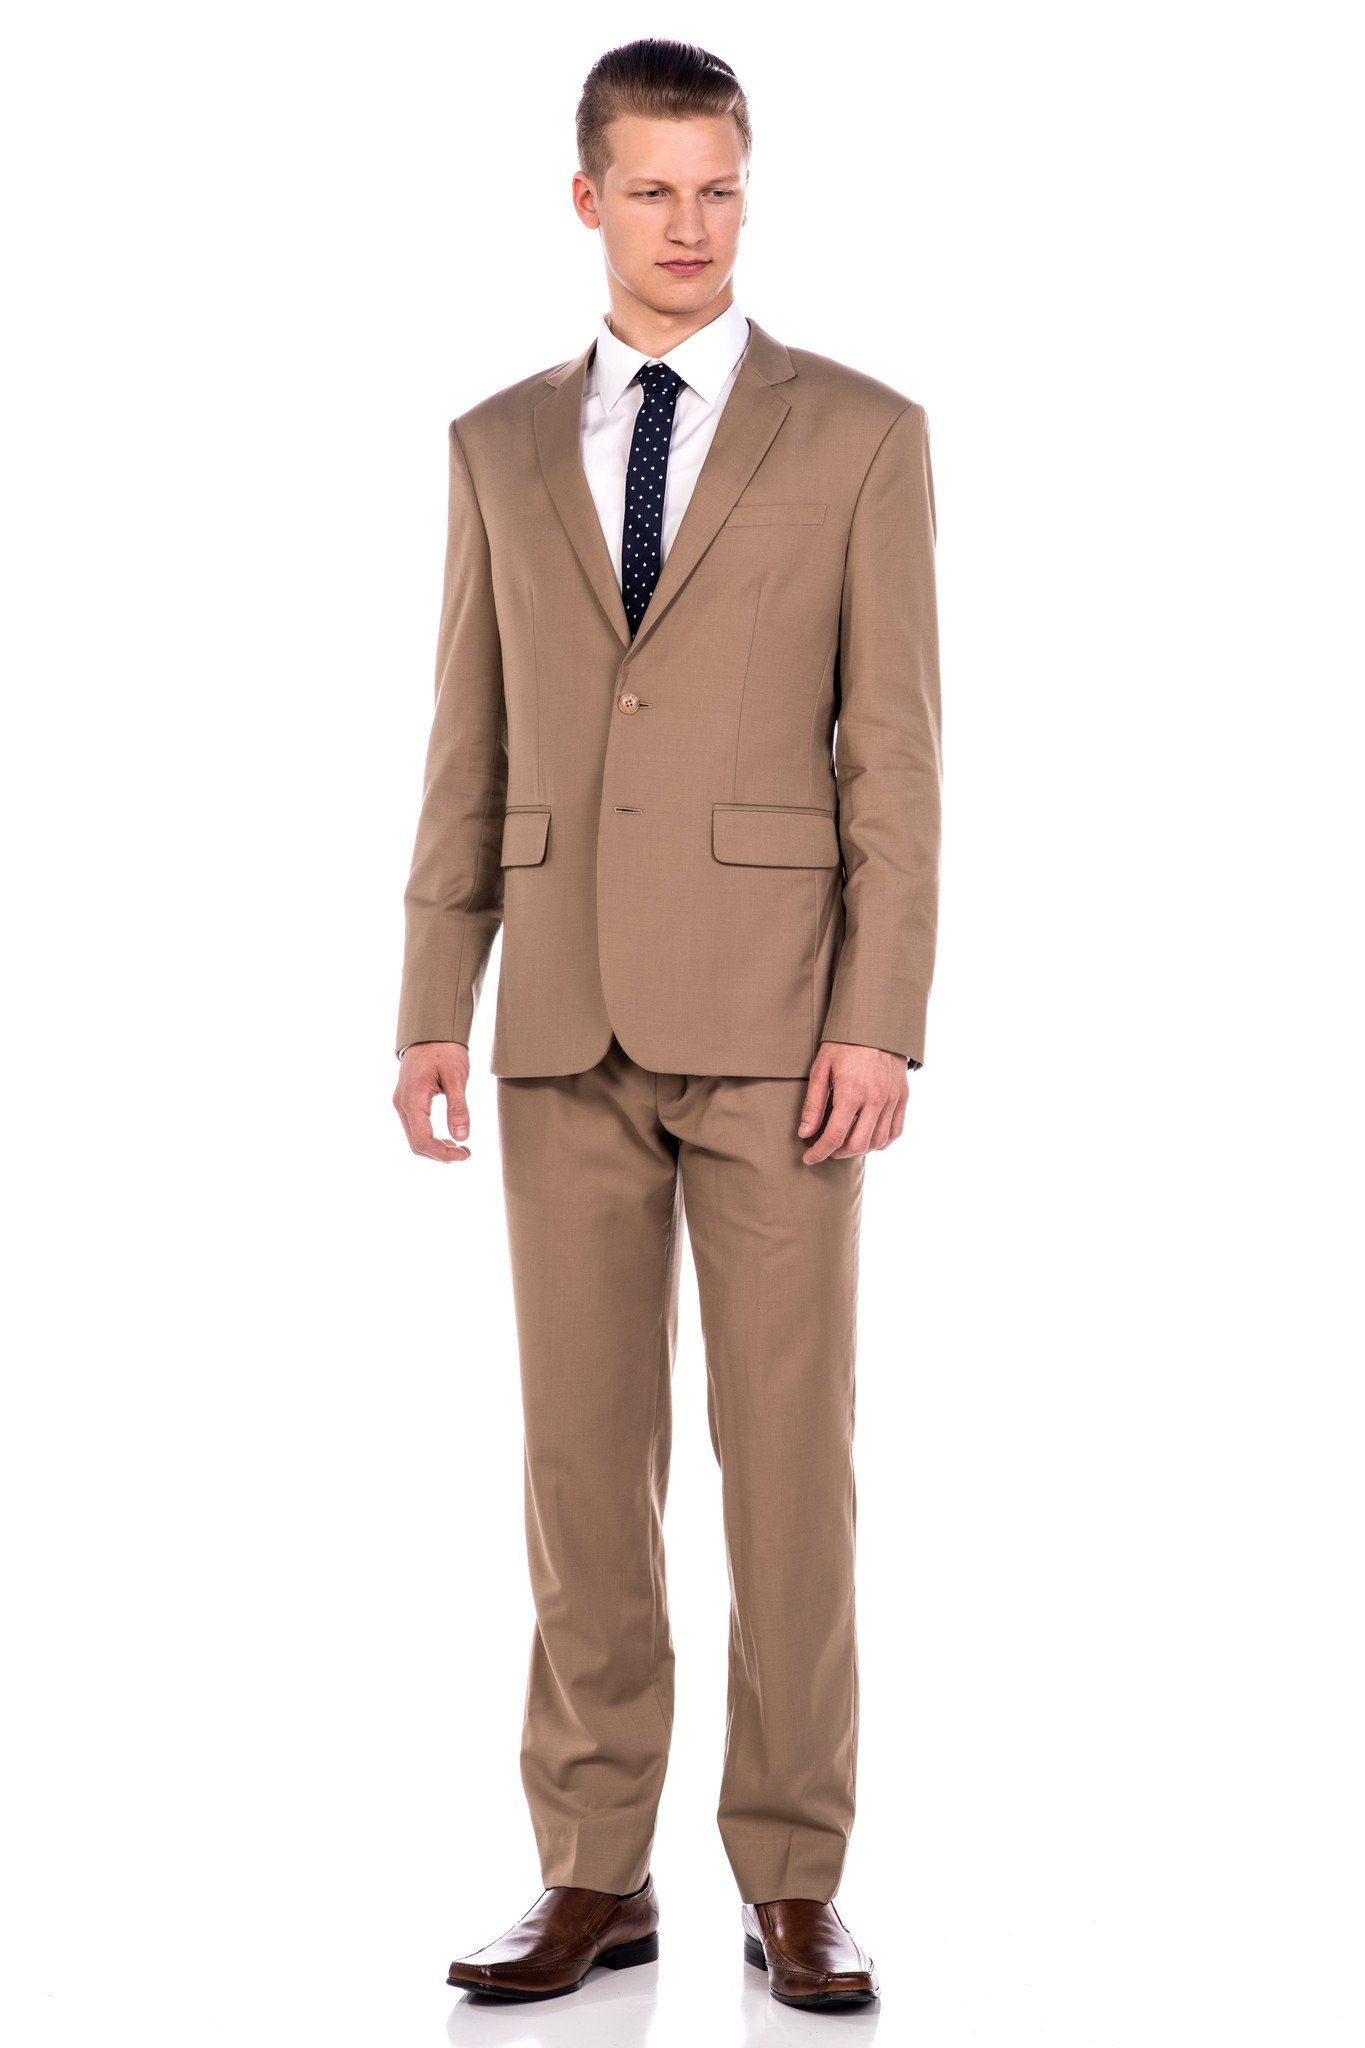 Suit - Sootz Cashmere Wool Light Brown Suit